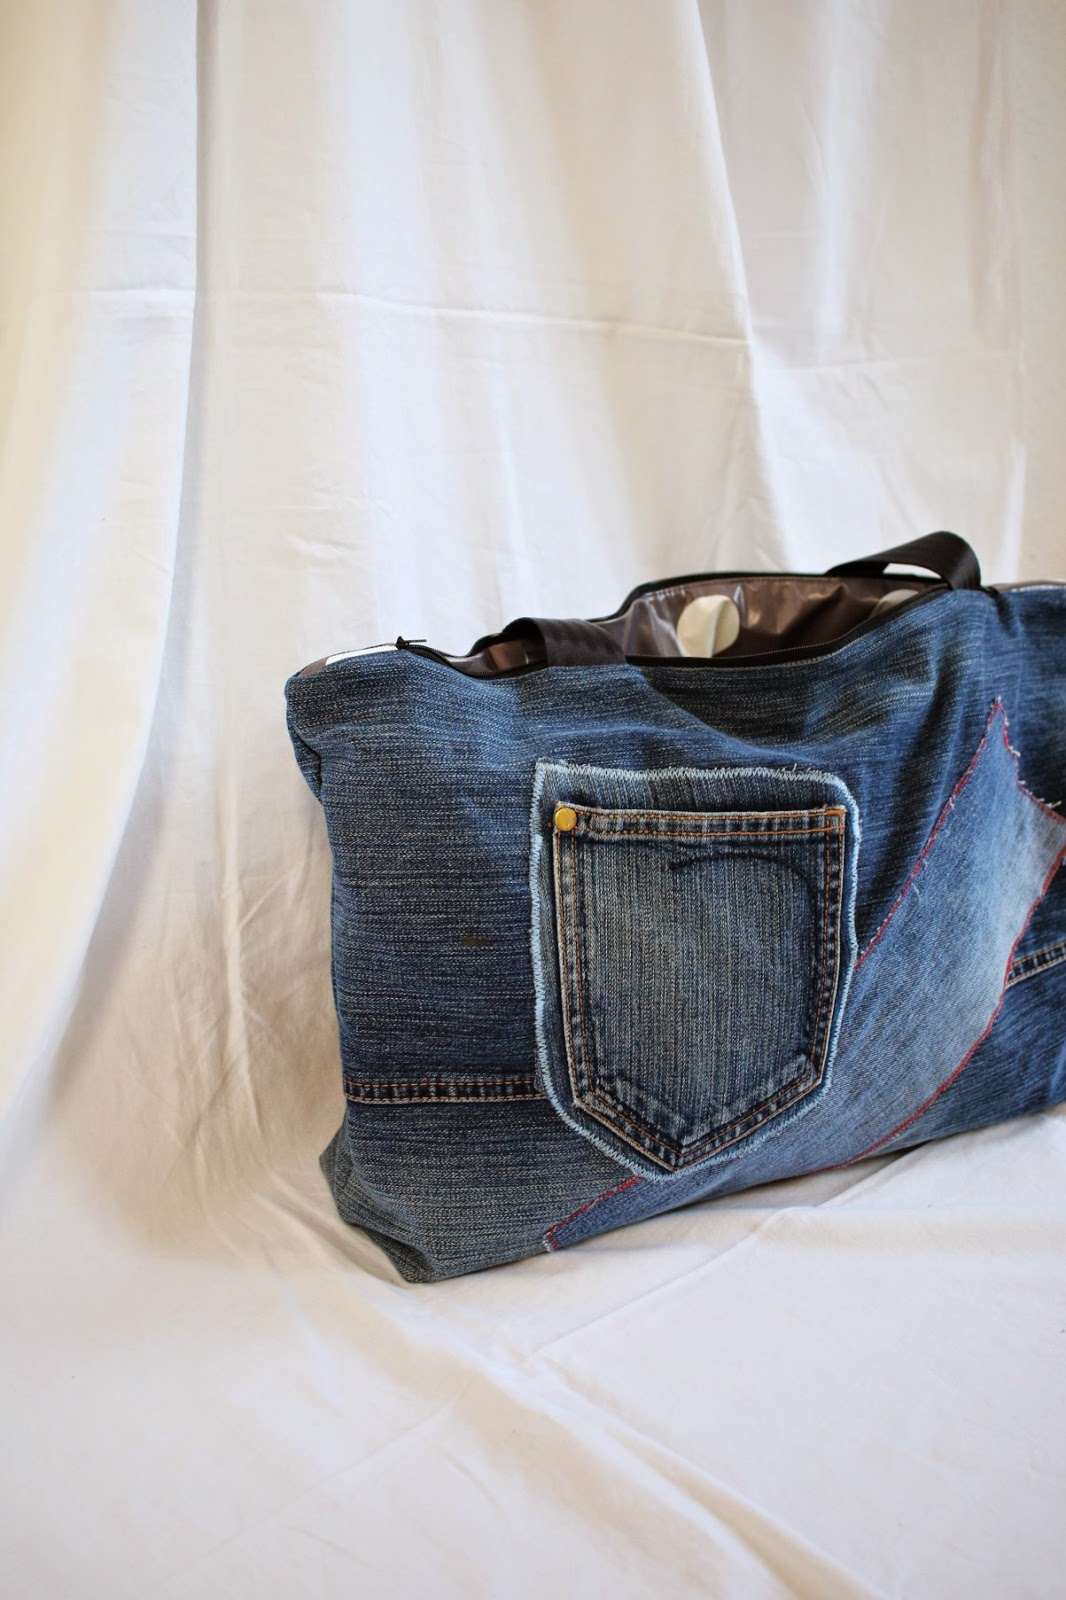 Swimming bag made from pair of jeans / Schwimmtasche aus alter Jeans und Wachstuchrest / Upcycling